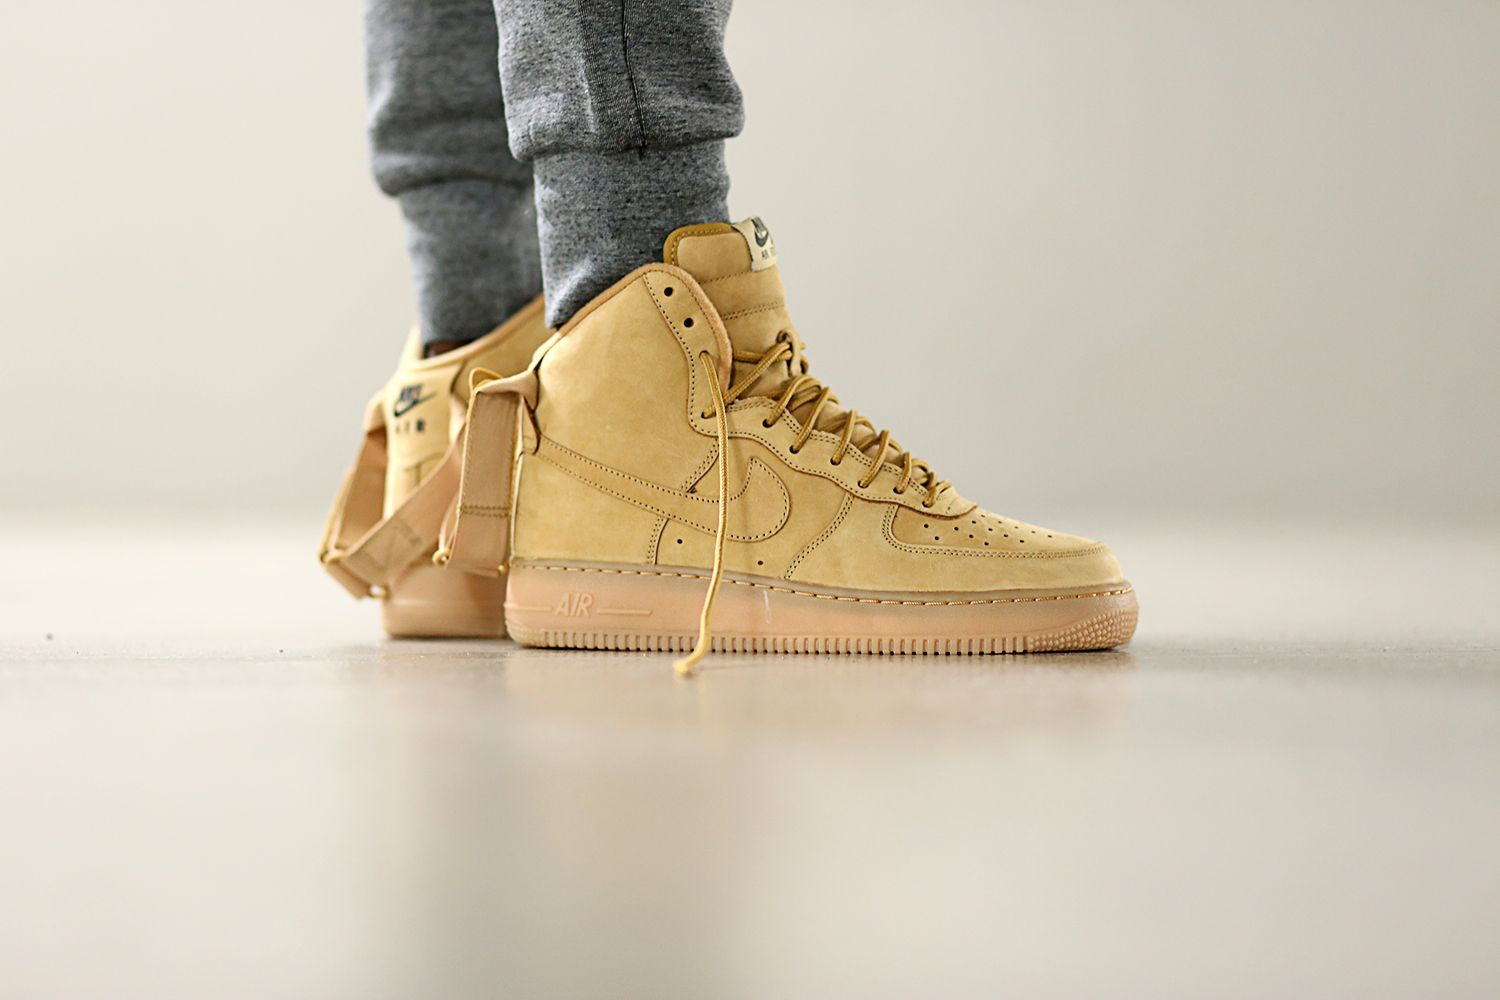 reputable site 1e0b9 b7695 Image result for af1 high on feet | Street Style: | Air ...